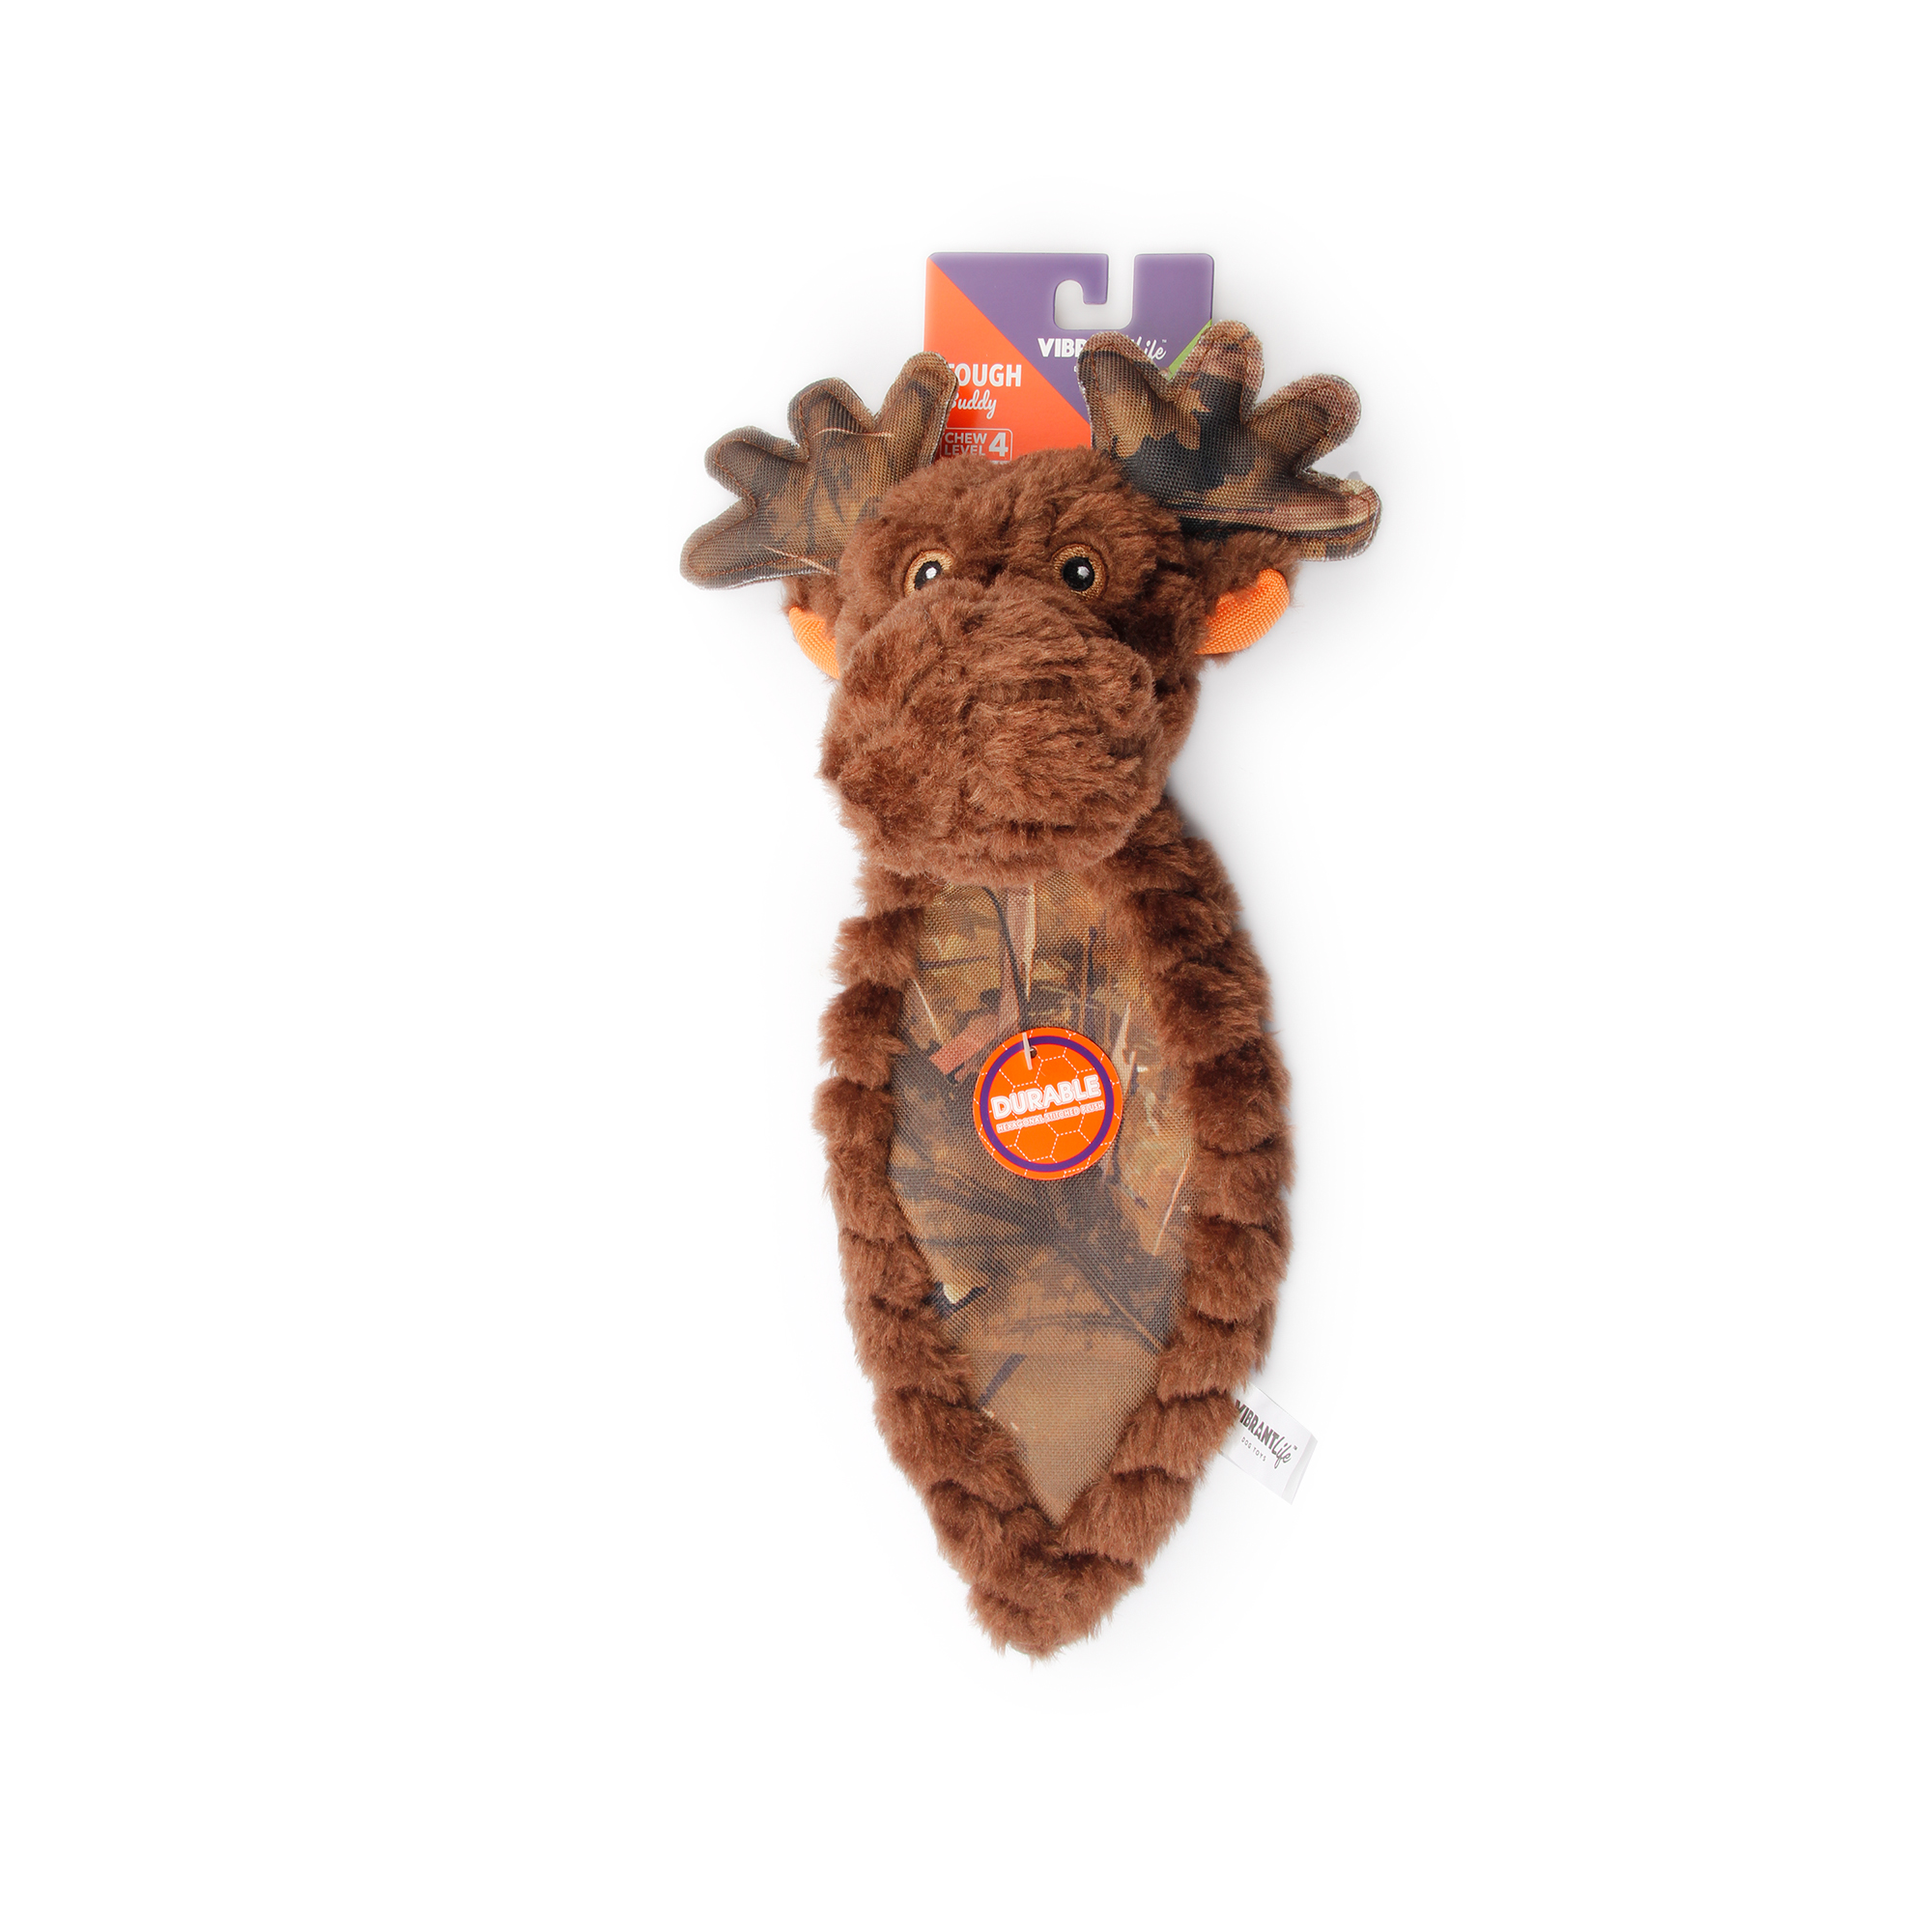 Vibrant Life Tough Buddy Dog Chew Toy, Moose, Assorted